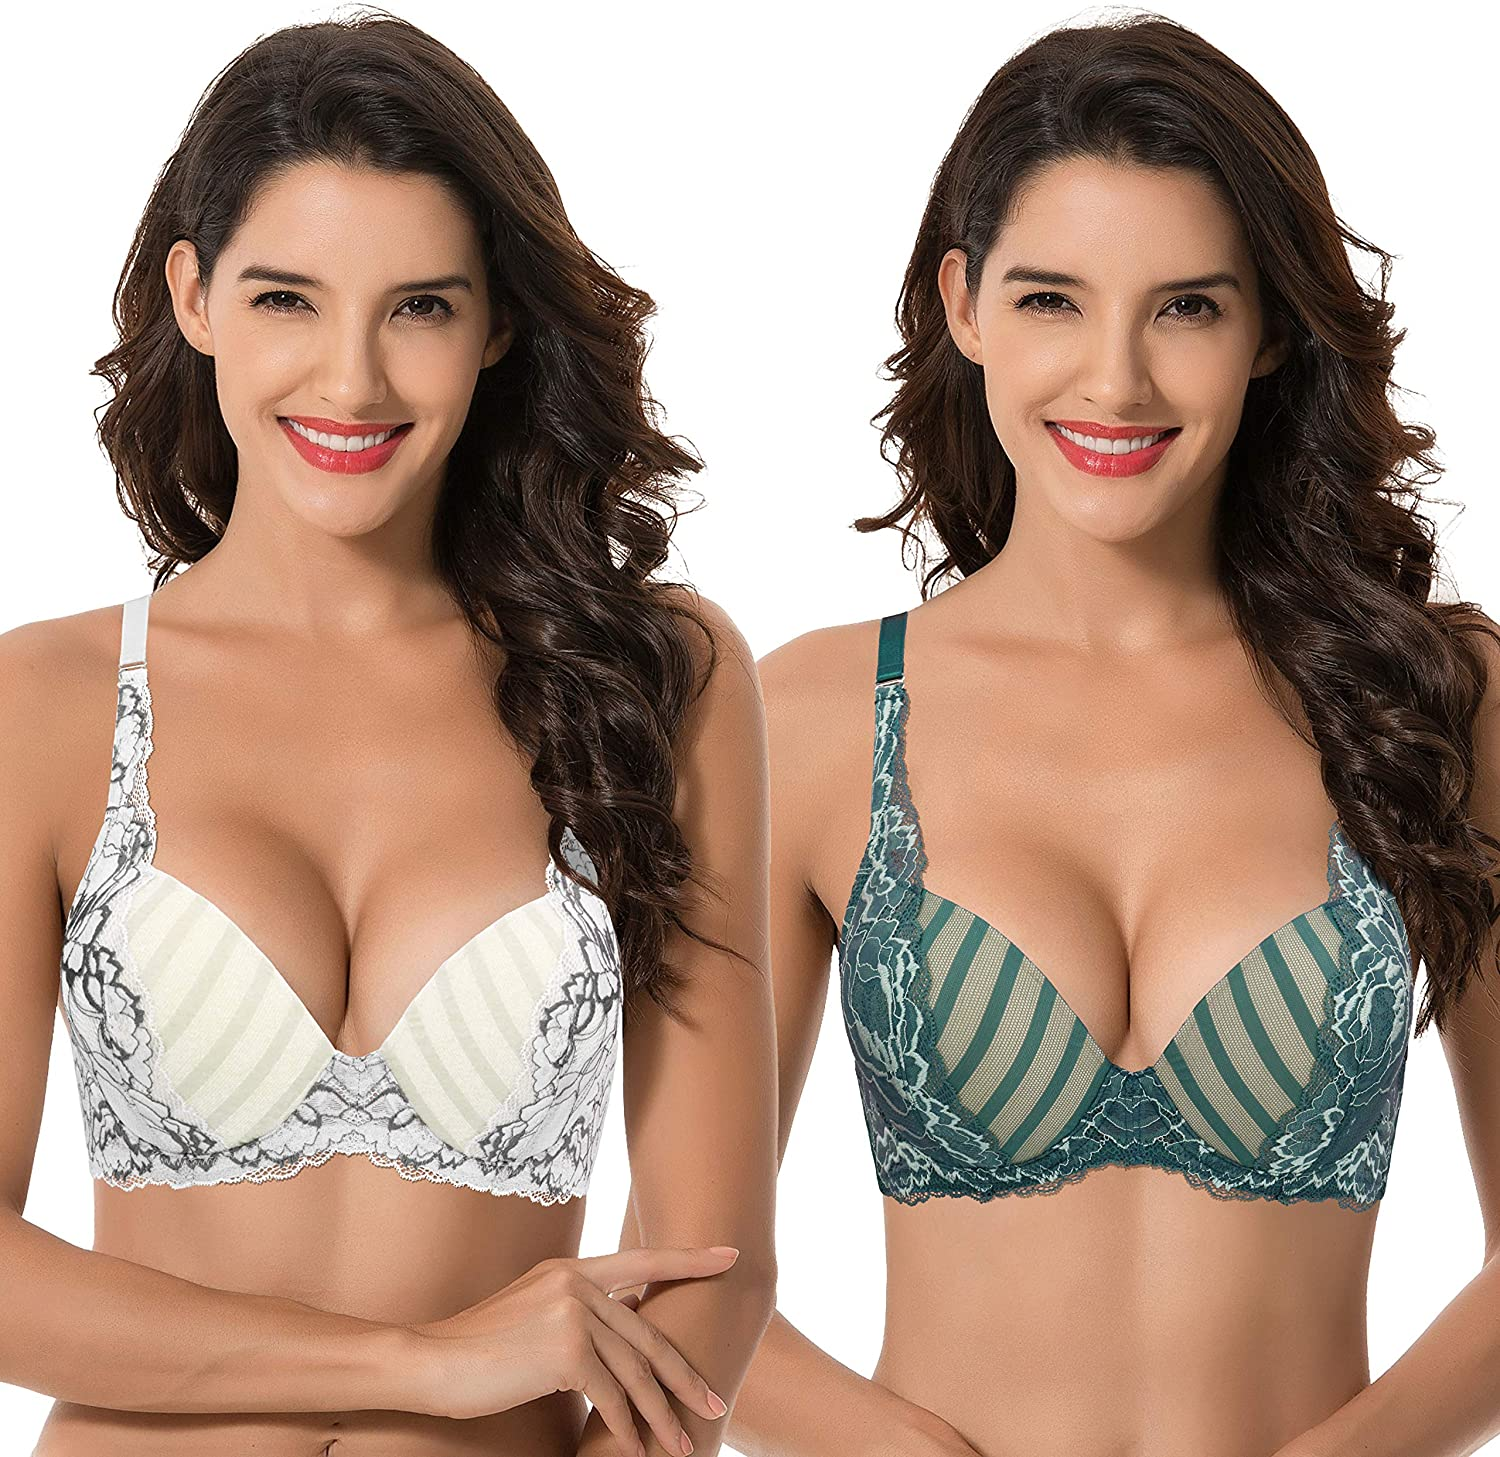 Curve Muse Women's Plus Size Add 1 Cup Push Up Underwire Lace Mesh Bra